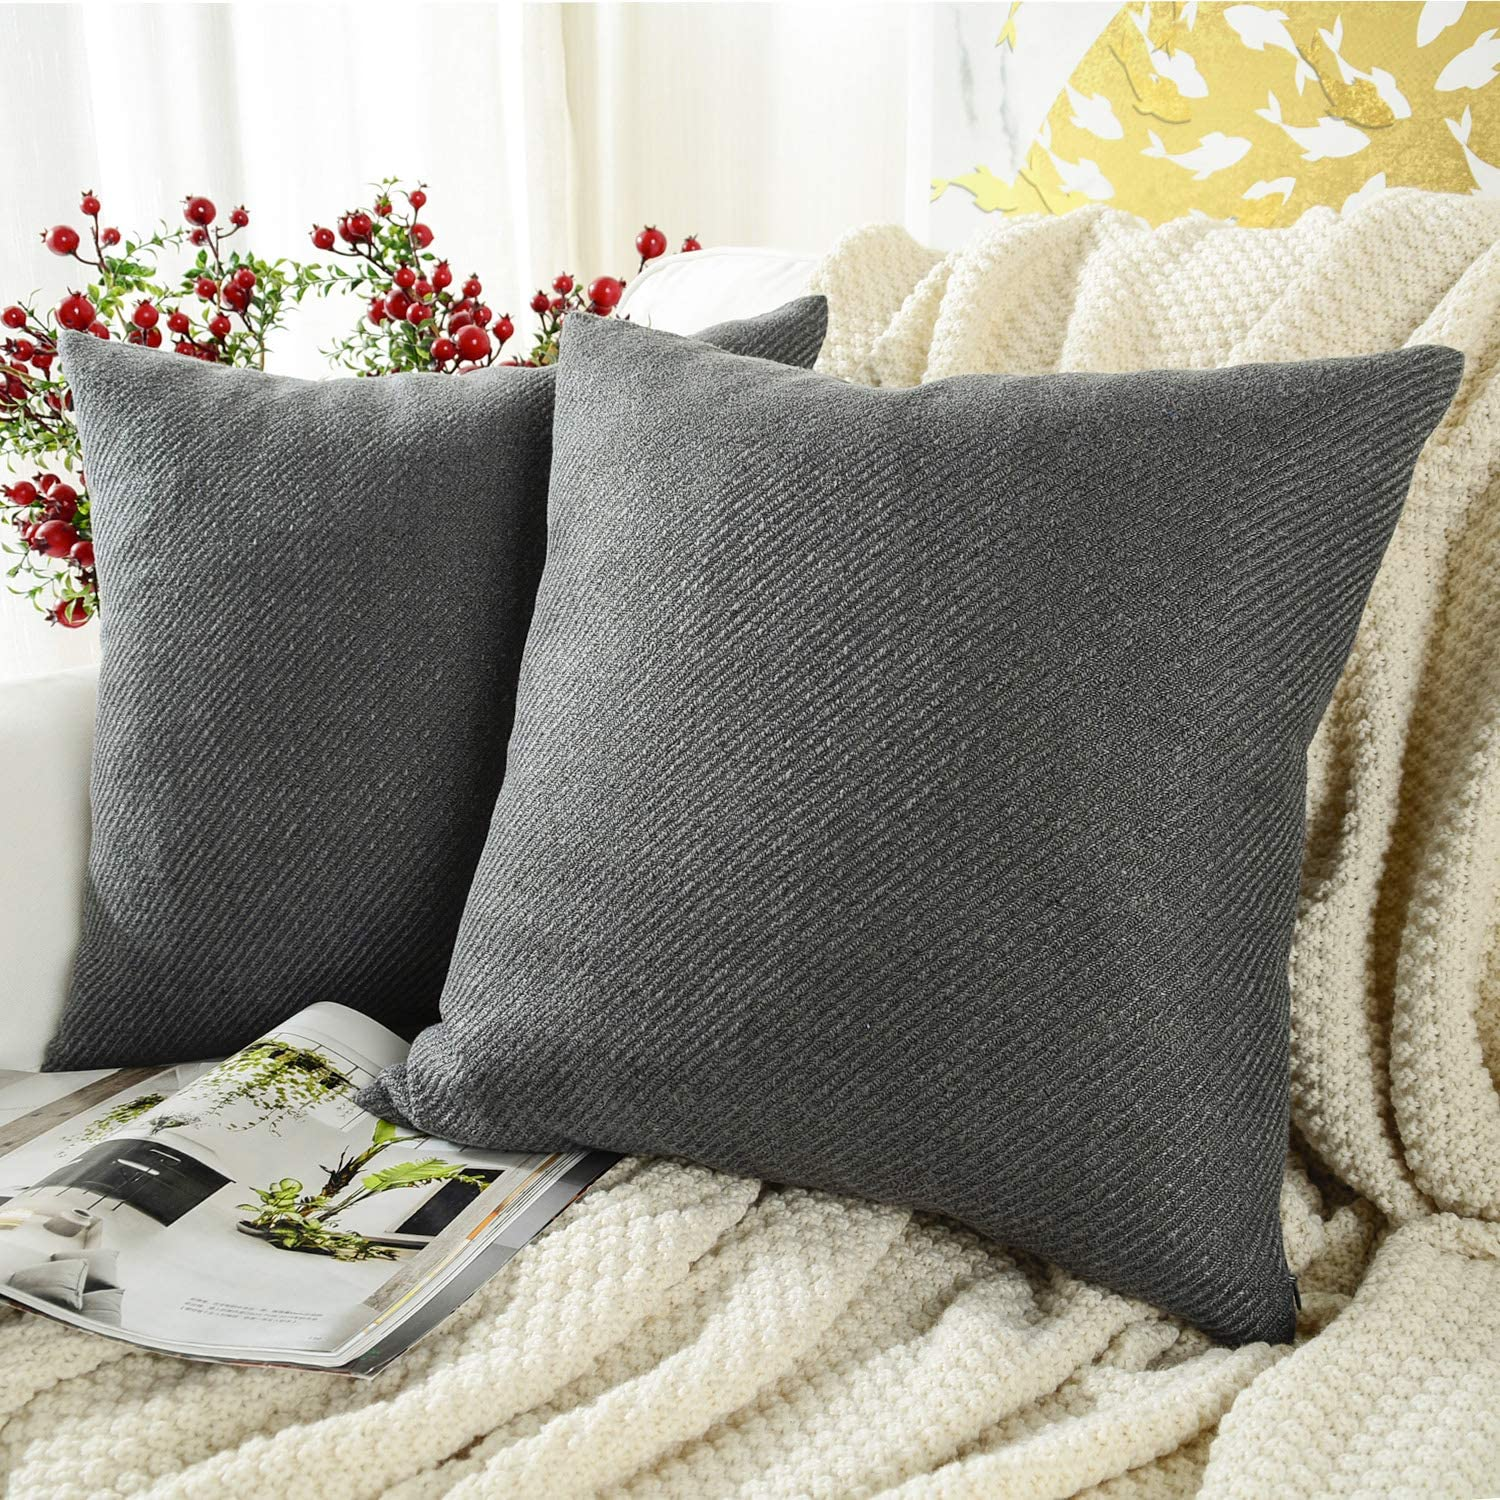 MERNETTE Pack of 2, Chenille Soft Decorative Square Throw Pillow Cover Cushion Covers Pillowcase, Home Decor Decorations for Sofa Couch Bed Chair 24x24 Inch/60x60 cm (Dark Grey)